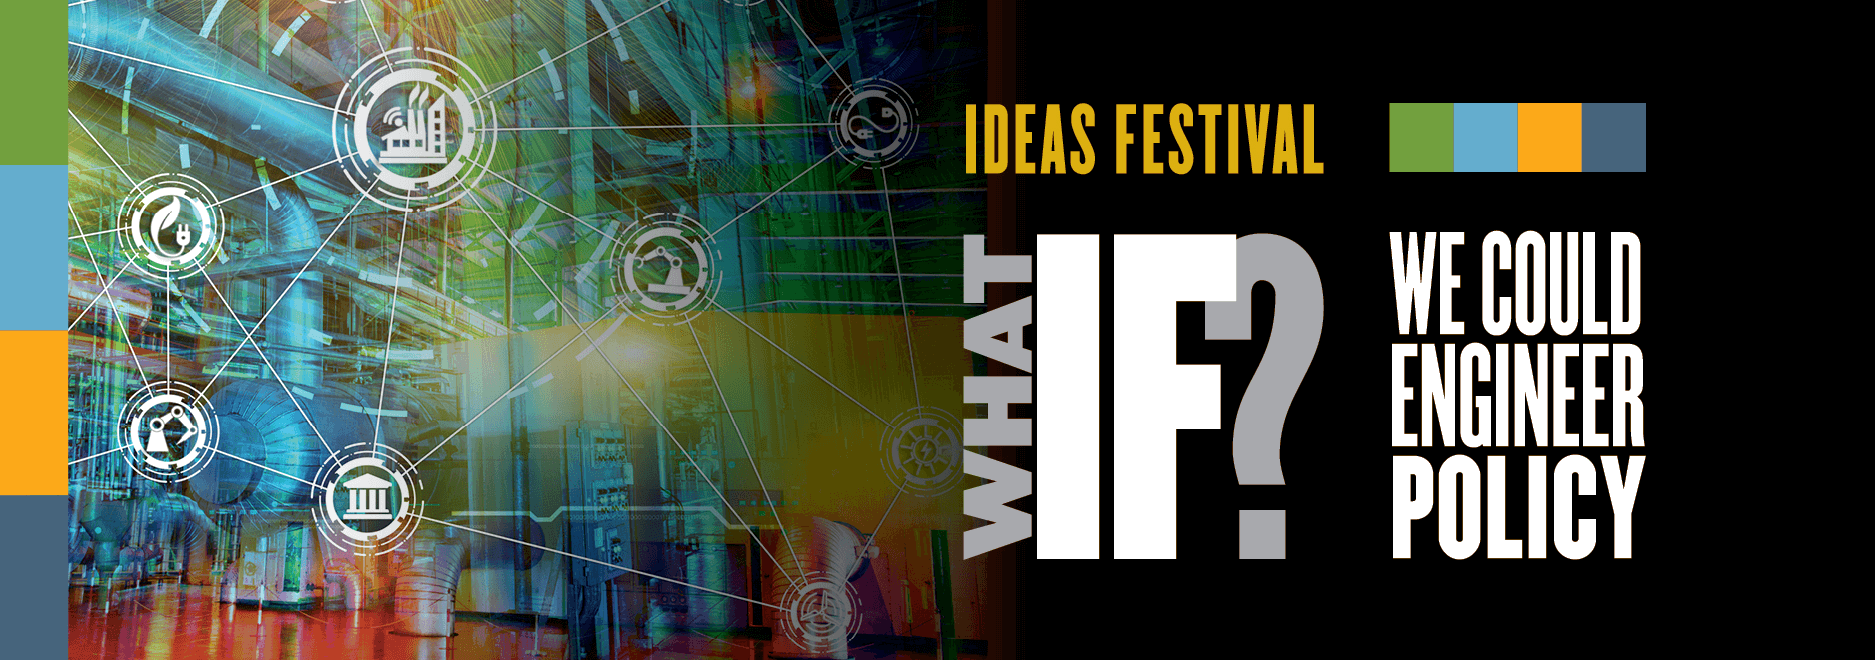 Ideas Festival: What if we could engineer policy?